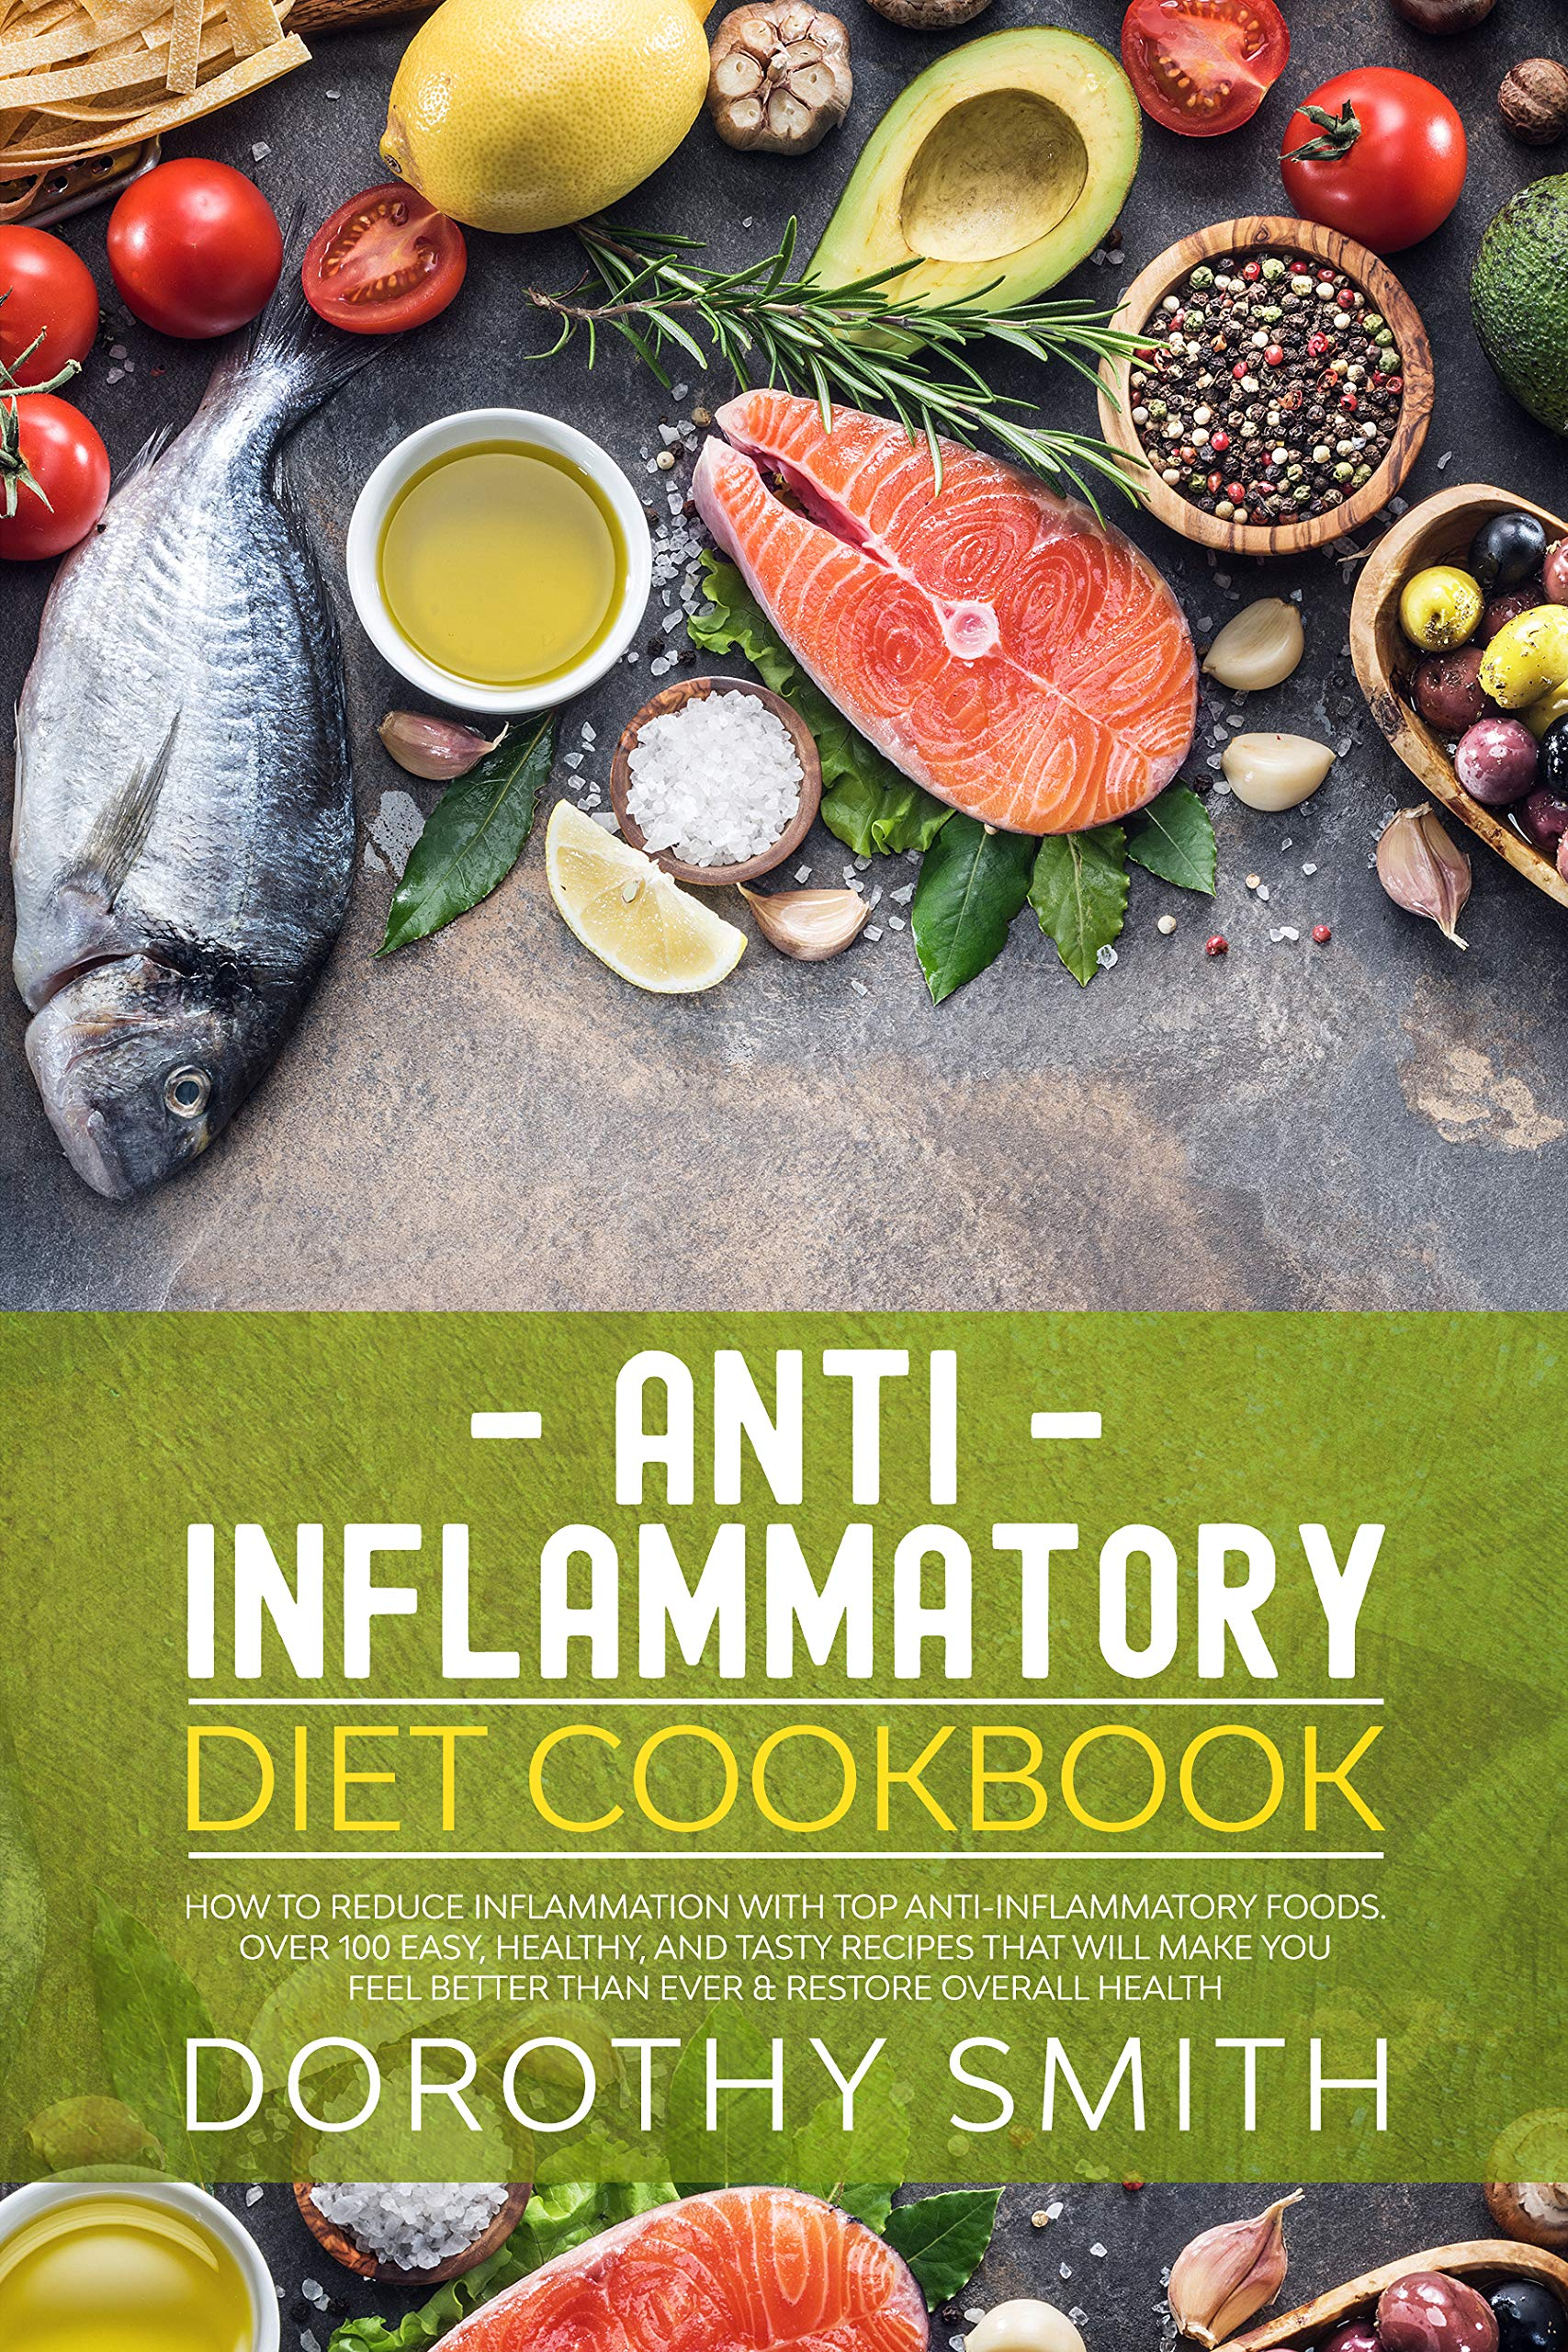 Anti Inflammatory Diet Cookbook  How To Reduce Inflammation With Top Anti Inflammatory Foods. Over 100 Easy Healthy And Tasty Recipes That Will Make You ... Diet Book 1   English Edition